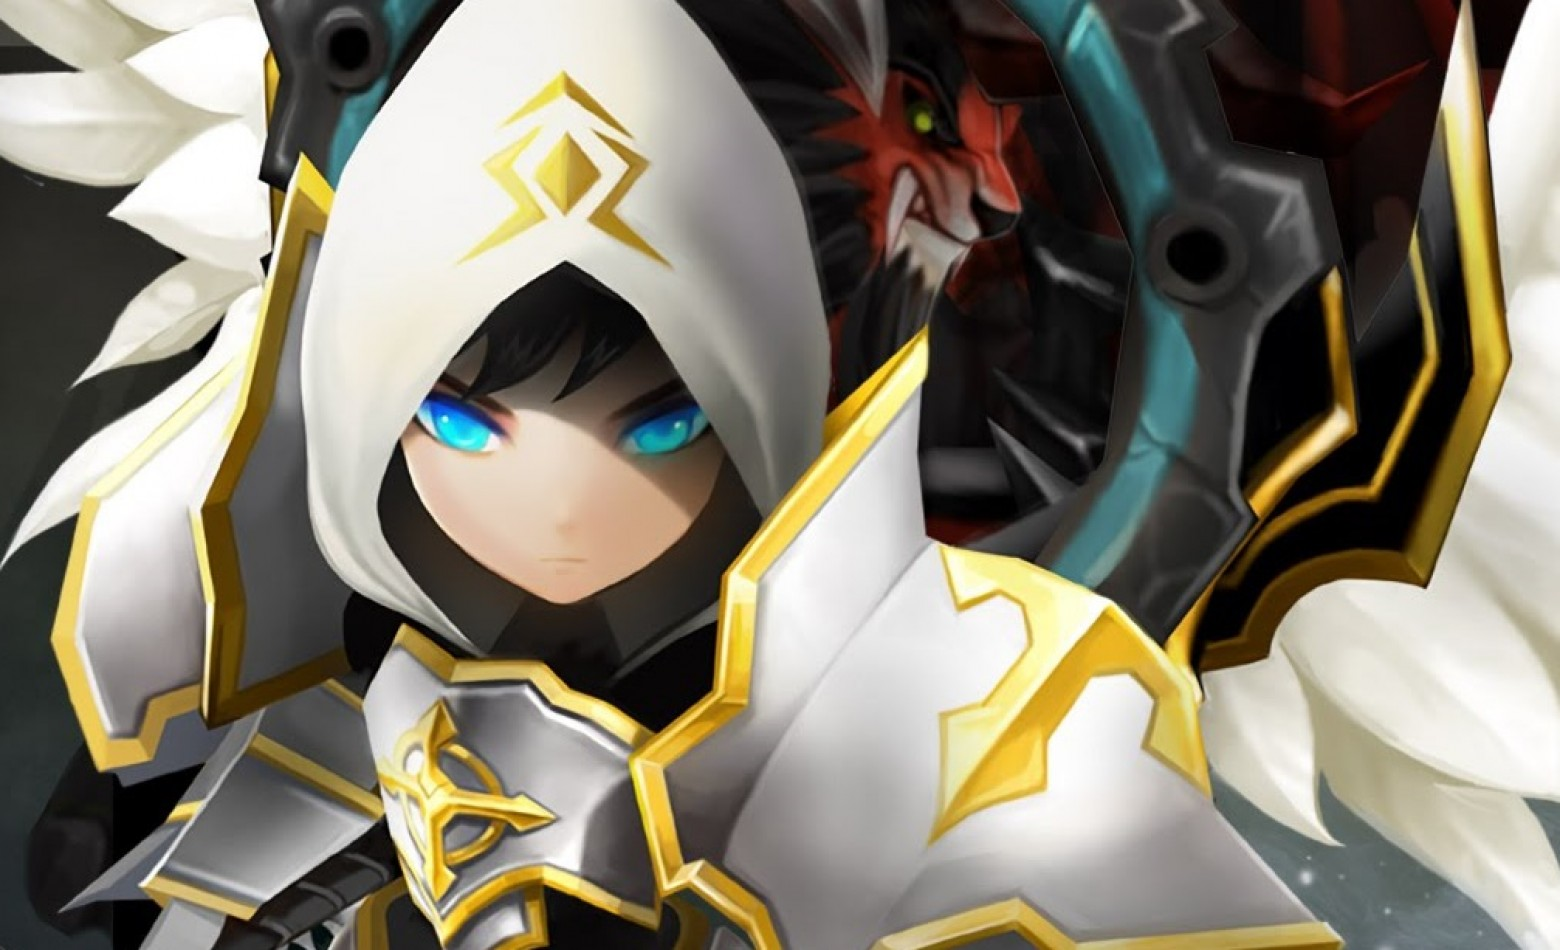 Summoners War: misturando sorte, turnos e raids com o touchscreen